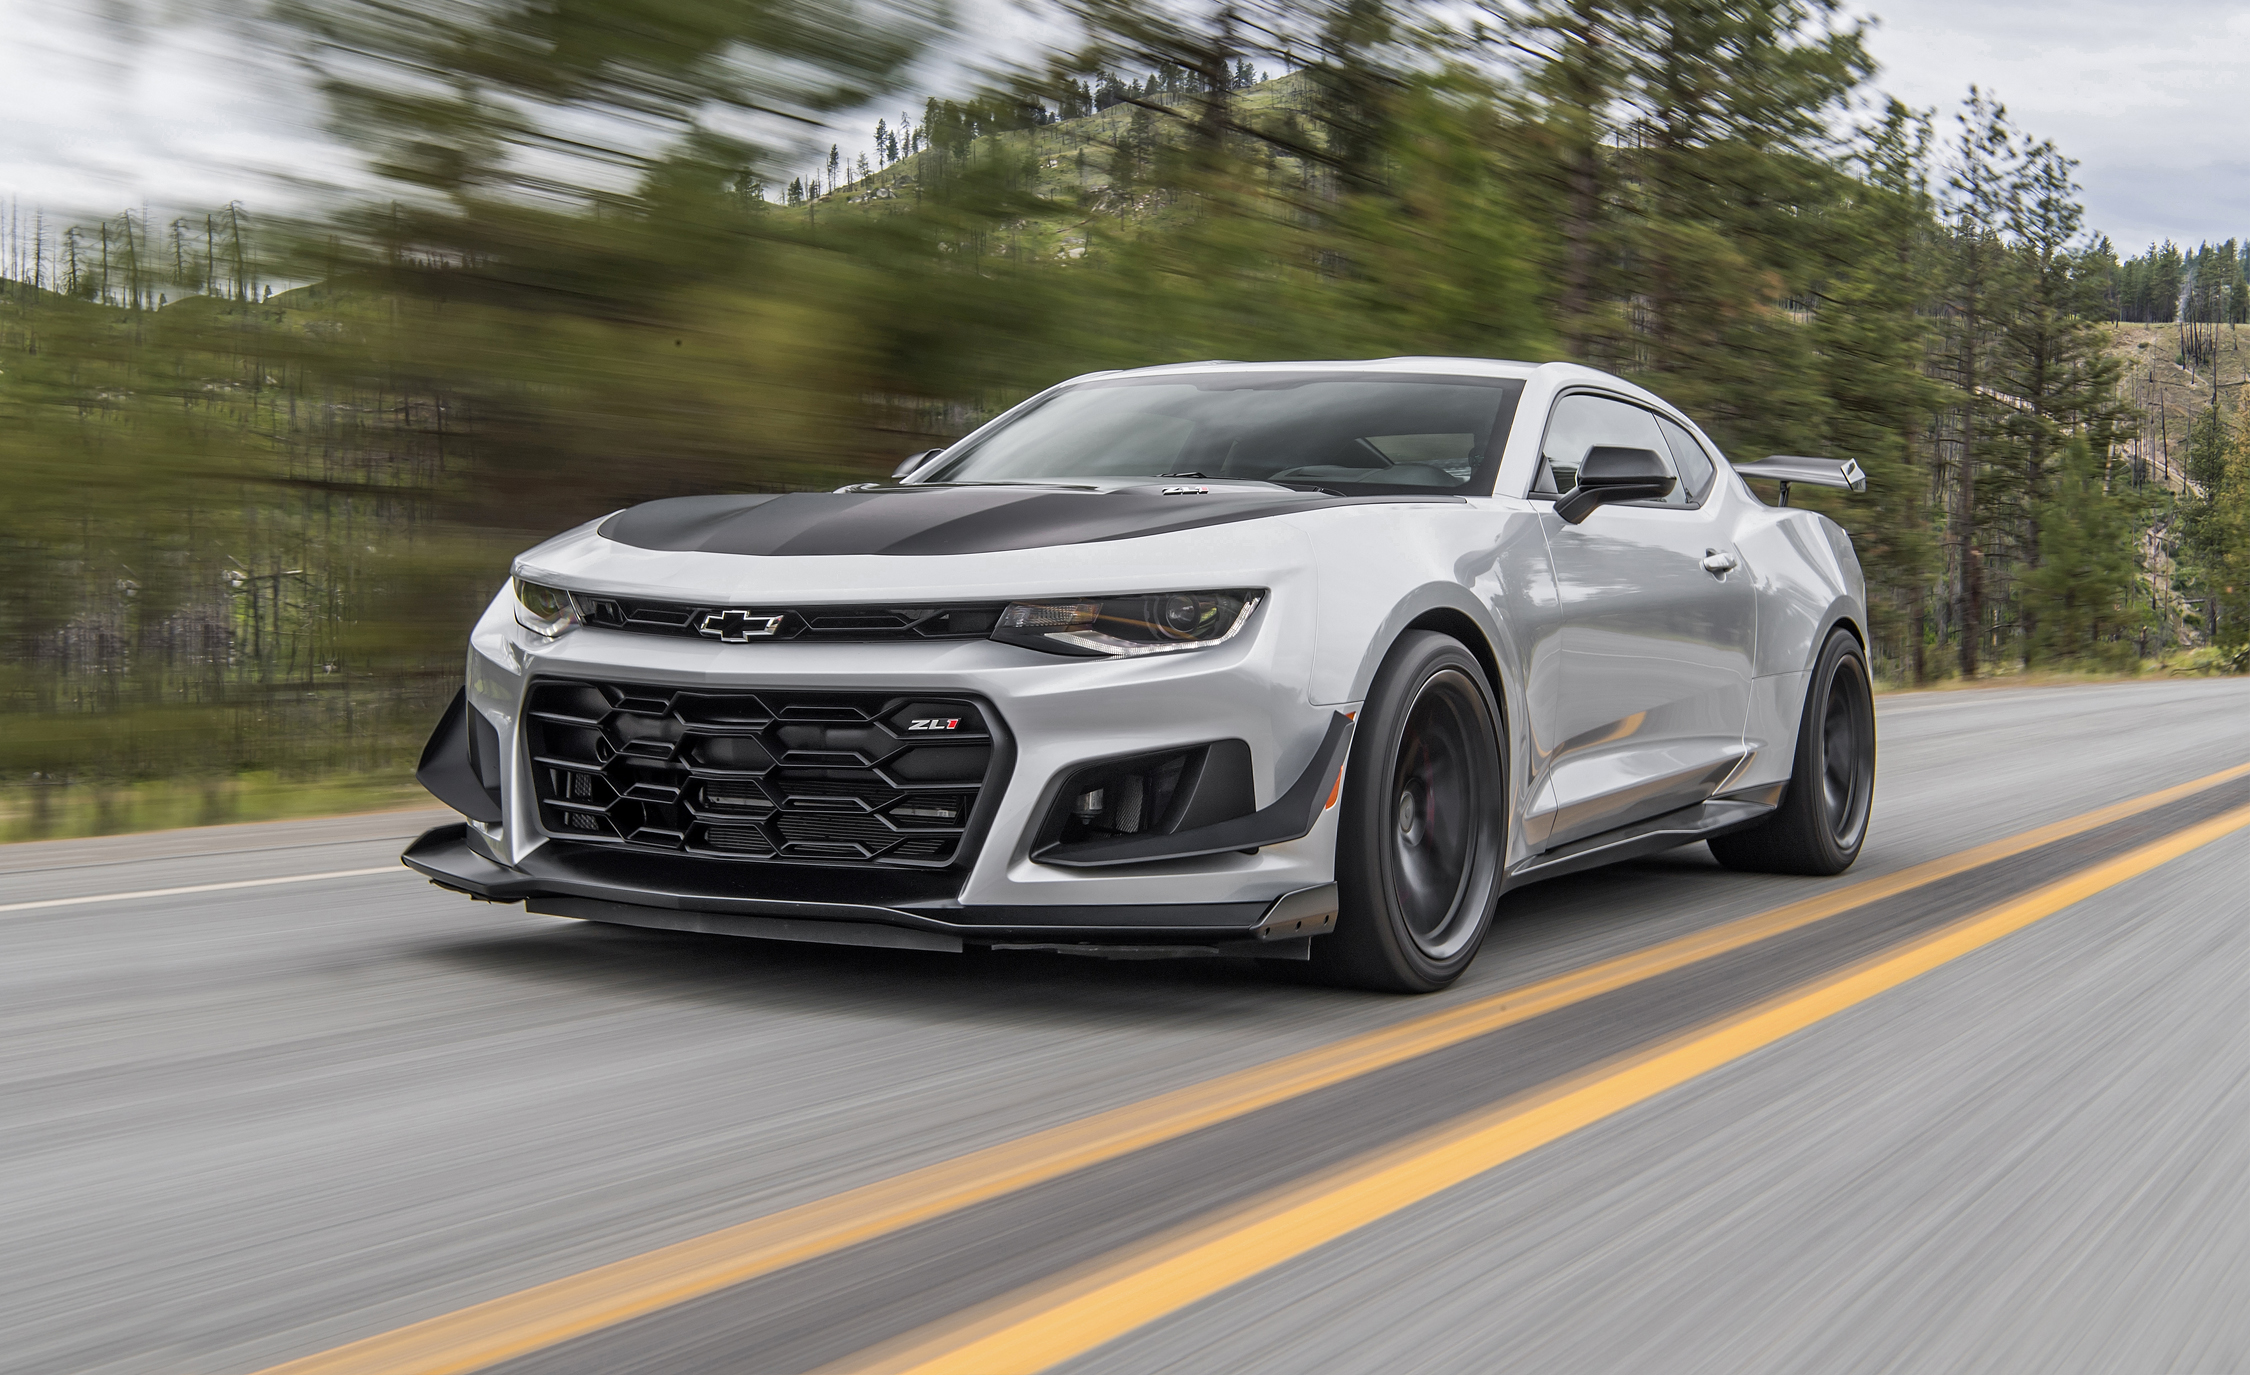 Is The 2018 Chevrolet Camaro Ss 1le Better Than The 2018